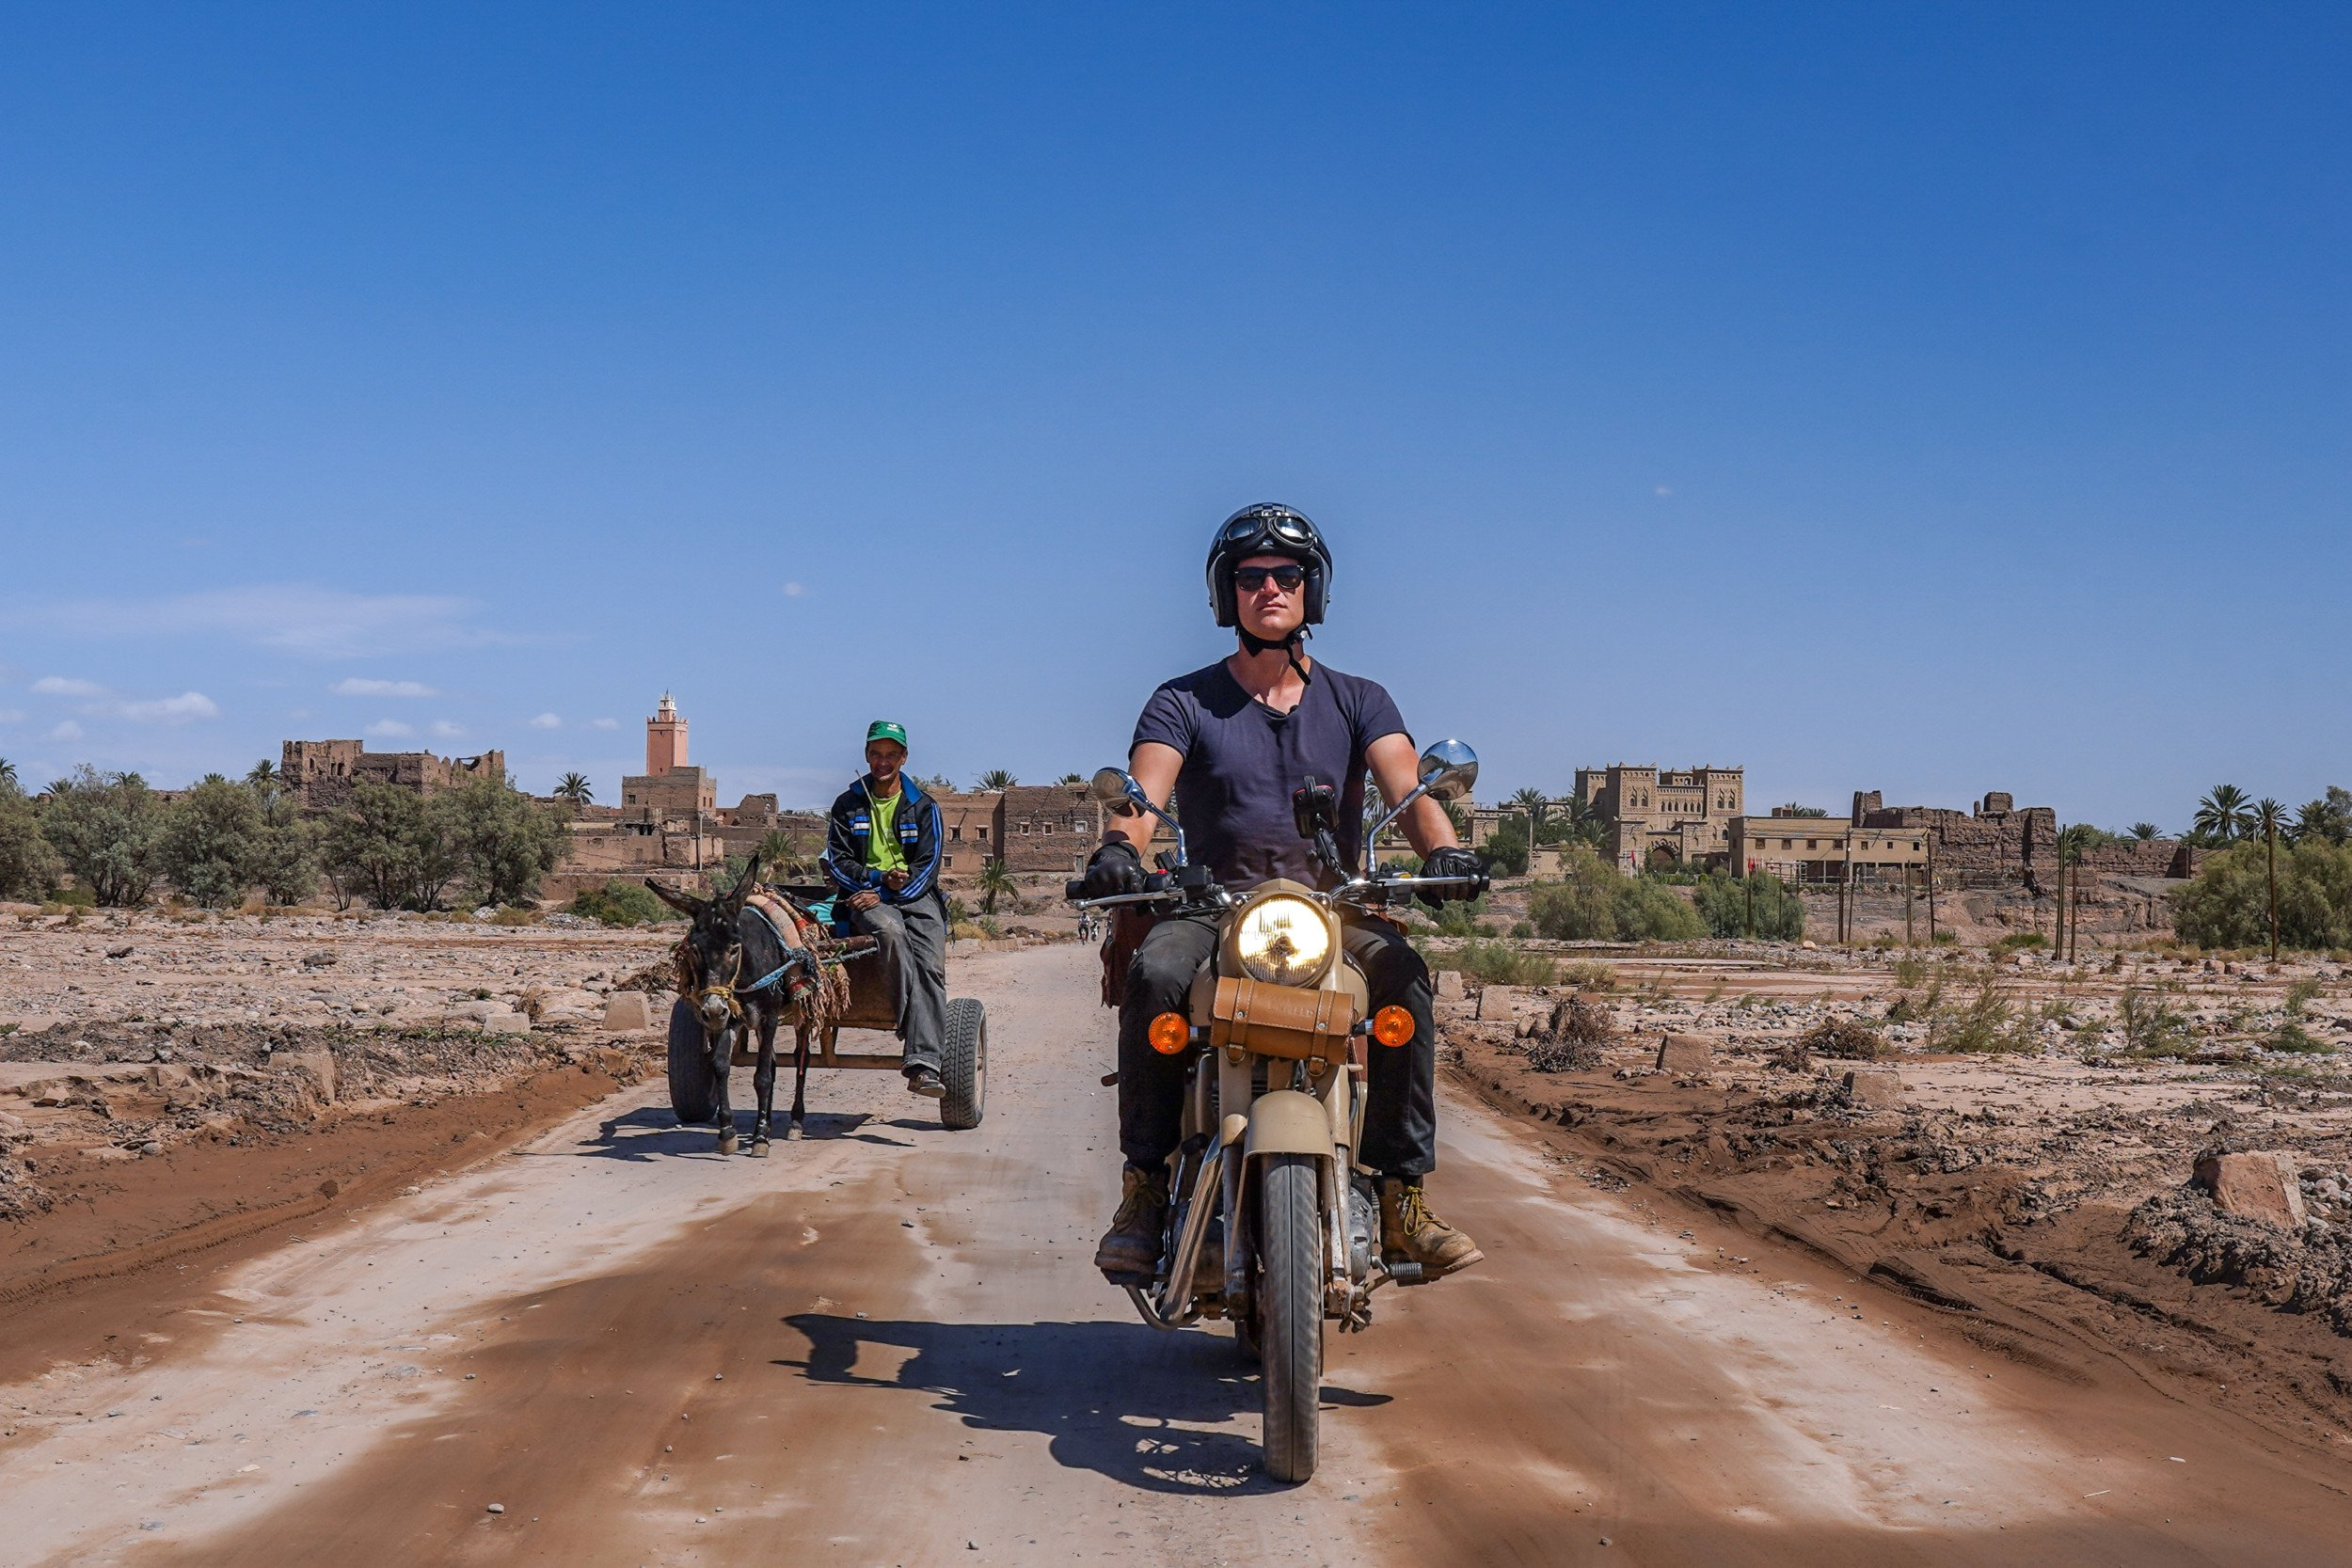 Motorcycle road trip Morocco - The Wonders of the Atlas Mountains